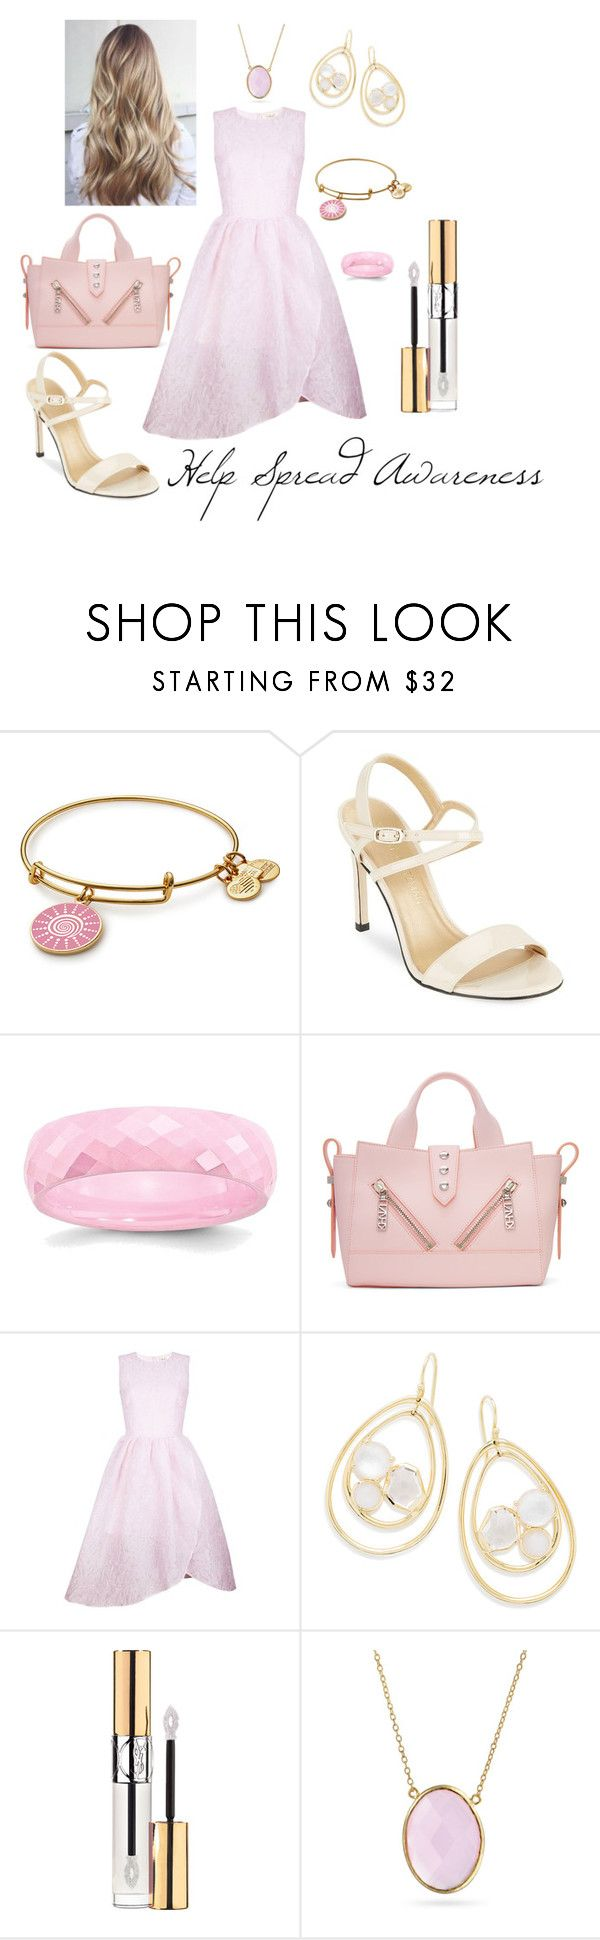 """Final Pink"" by timelesswaltz ❤ liked on Polyvore featuring Stuart Weitzman, Kenzo, Ukulele, Ippolita, Yves Saint Laurent and Bling Jewelry"